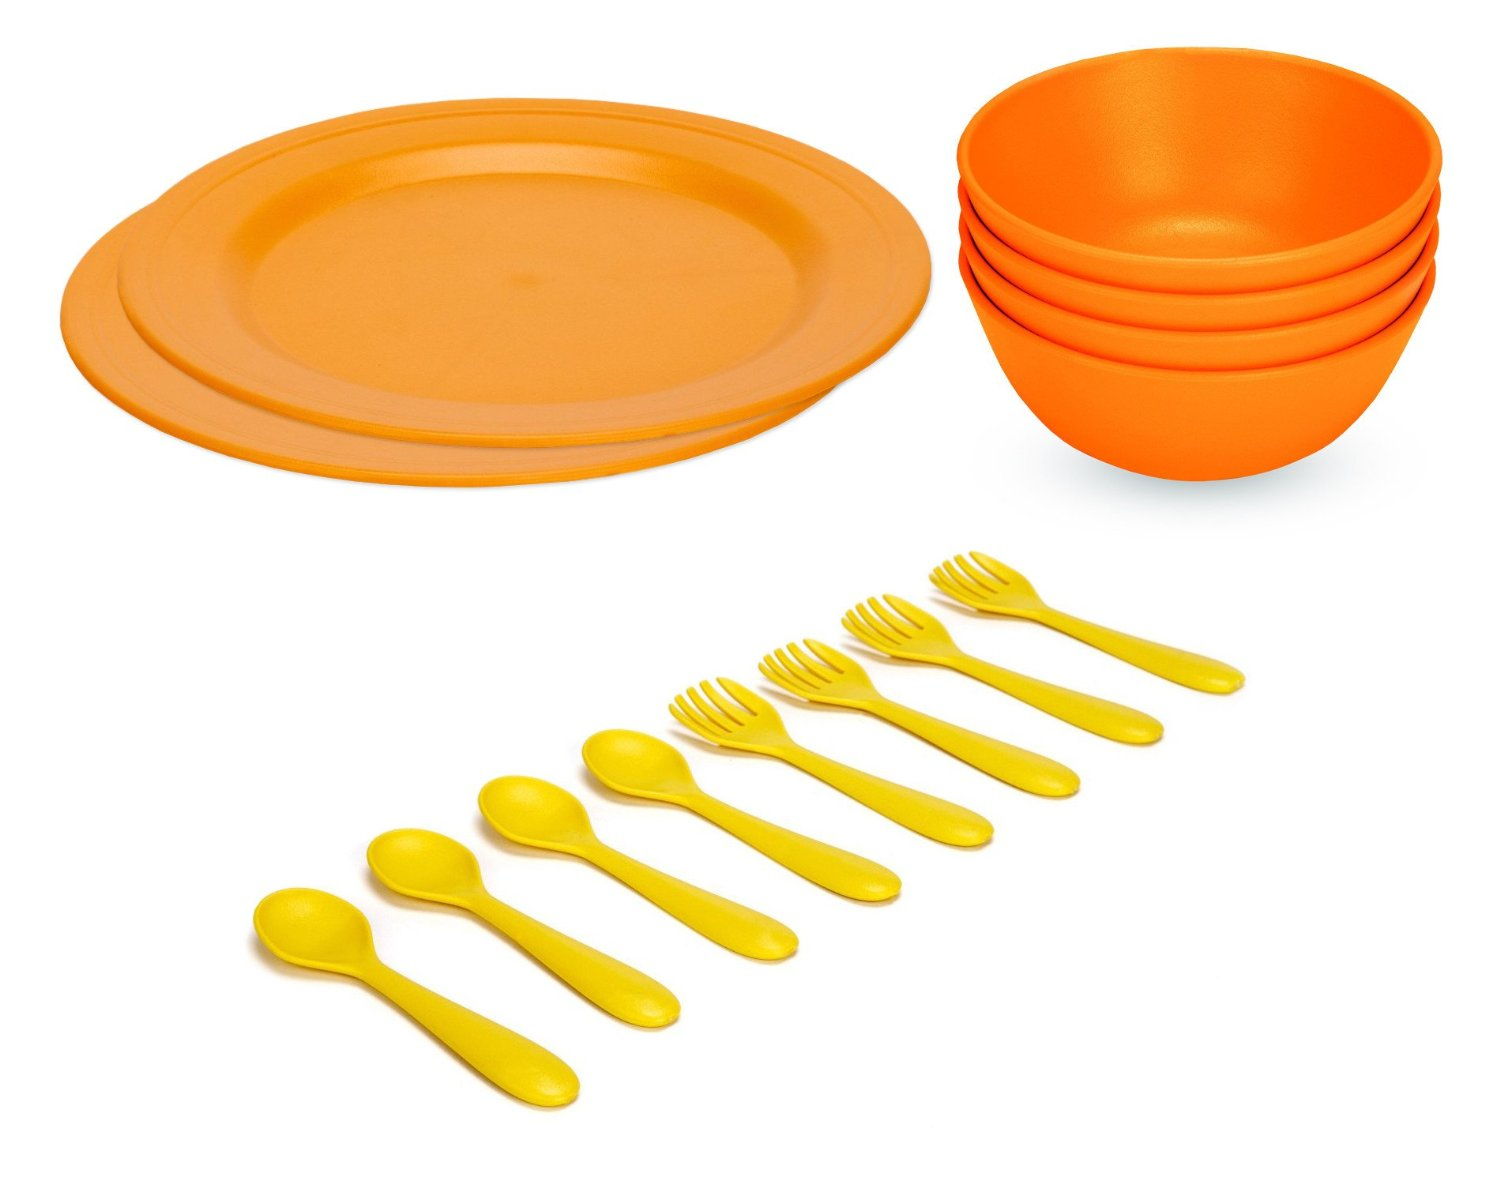 Green Eats Large Plates with Snack Bowls & Feeding Spoons & Forks, Orange by Green Eats